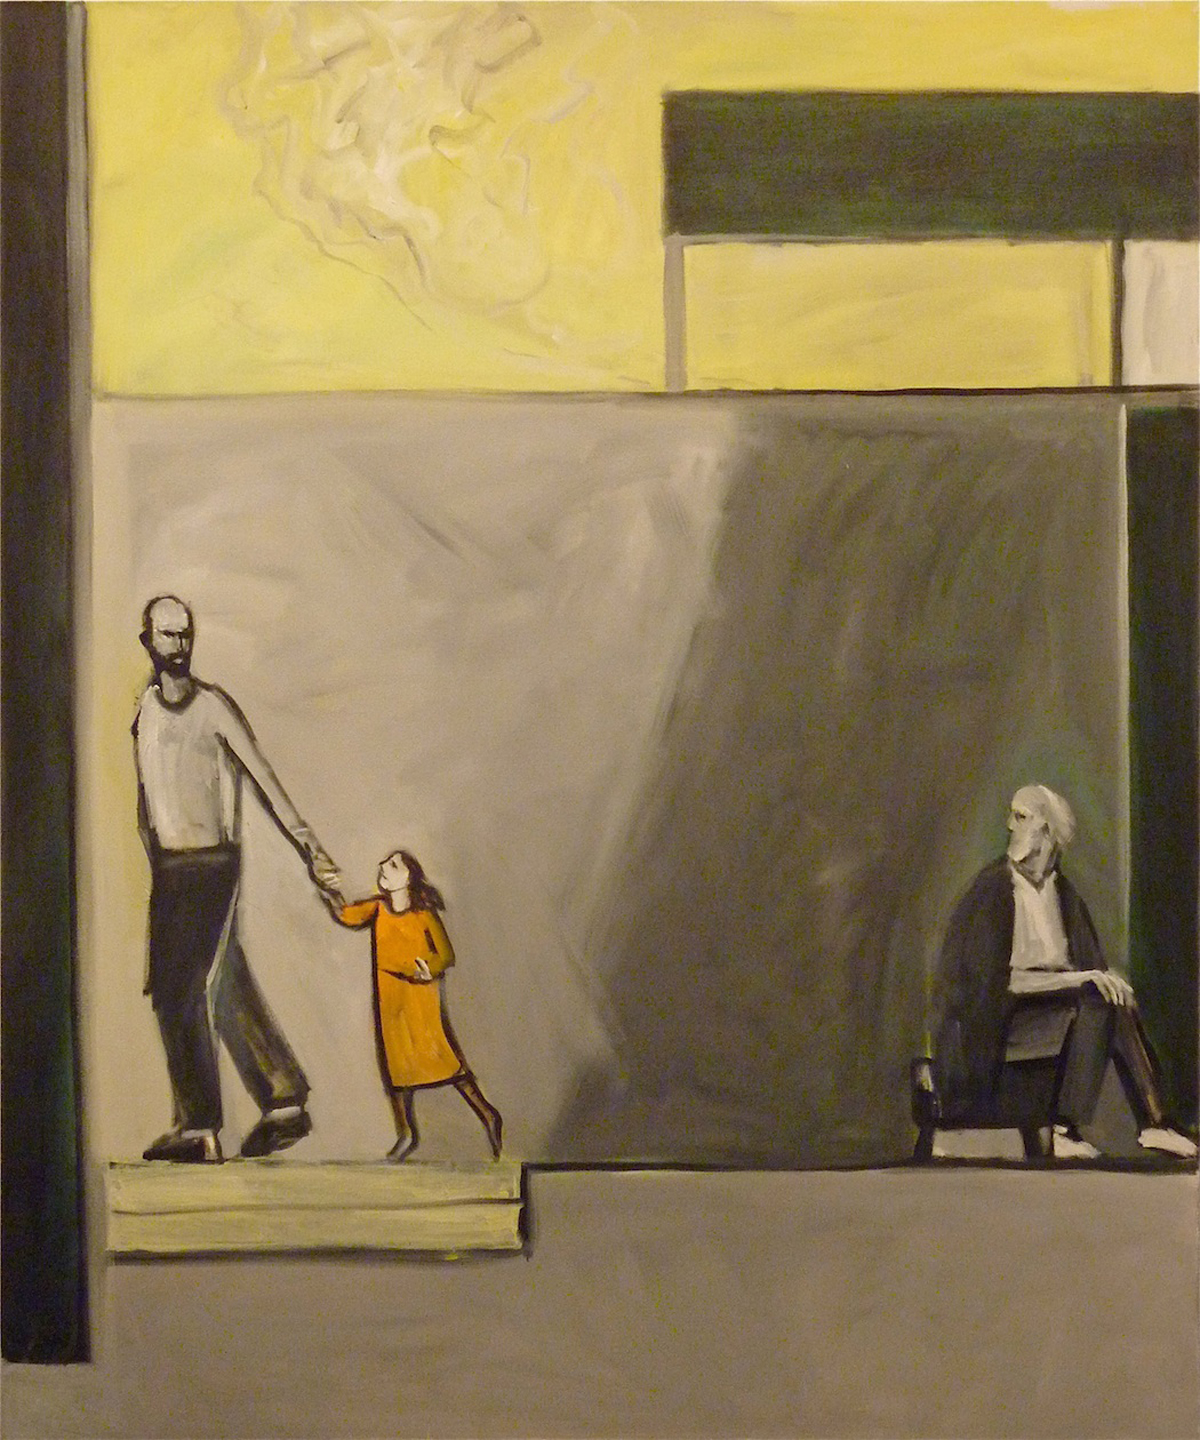 Isaac Comforted (2008) Oil on canvas, 6' x 5' by Richard McBee